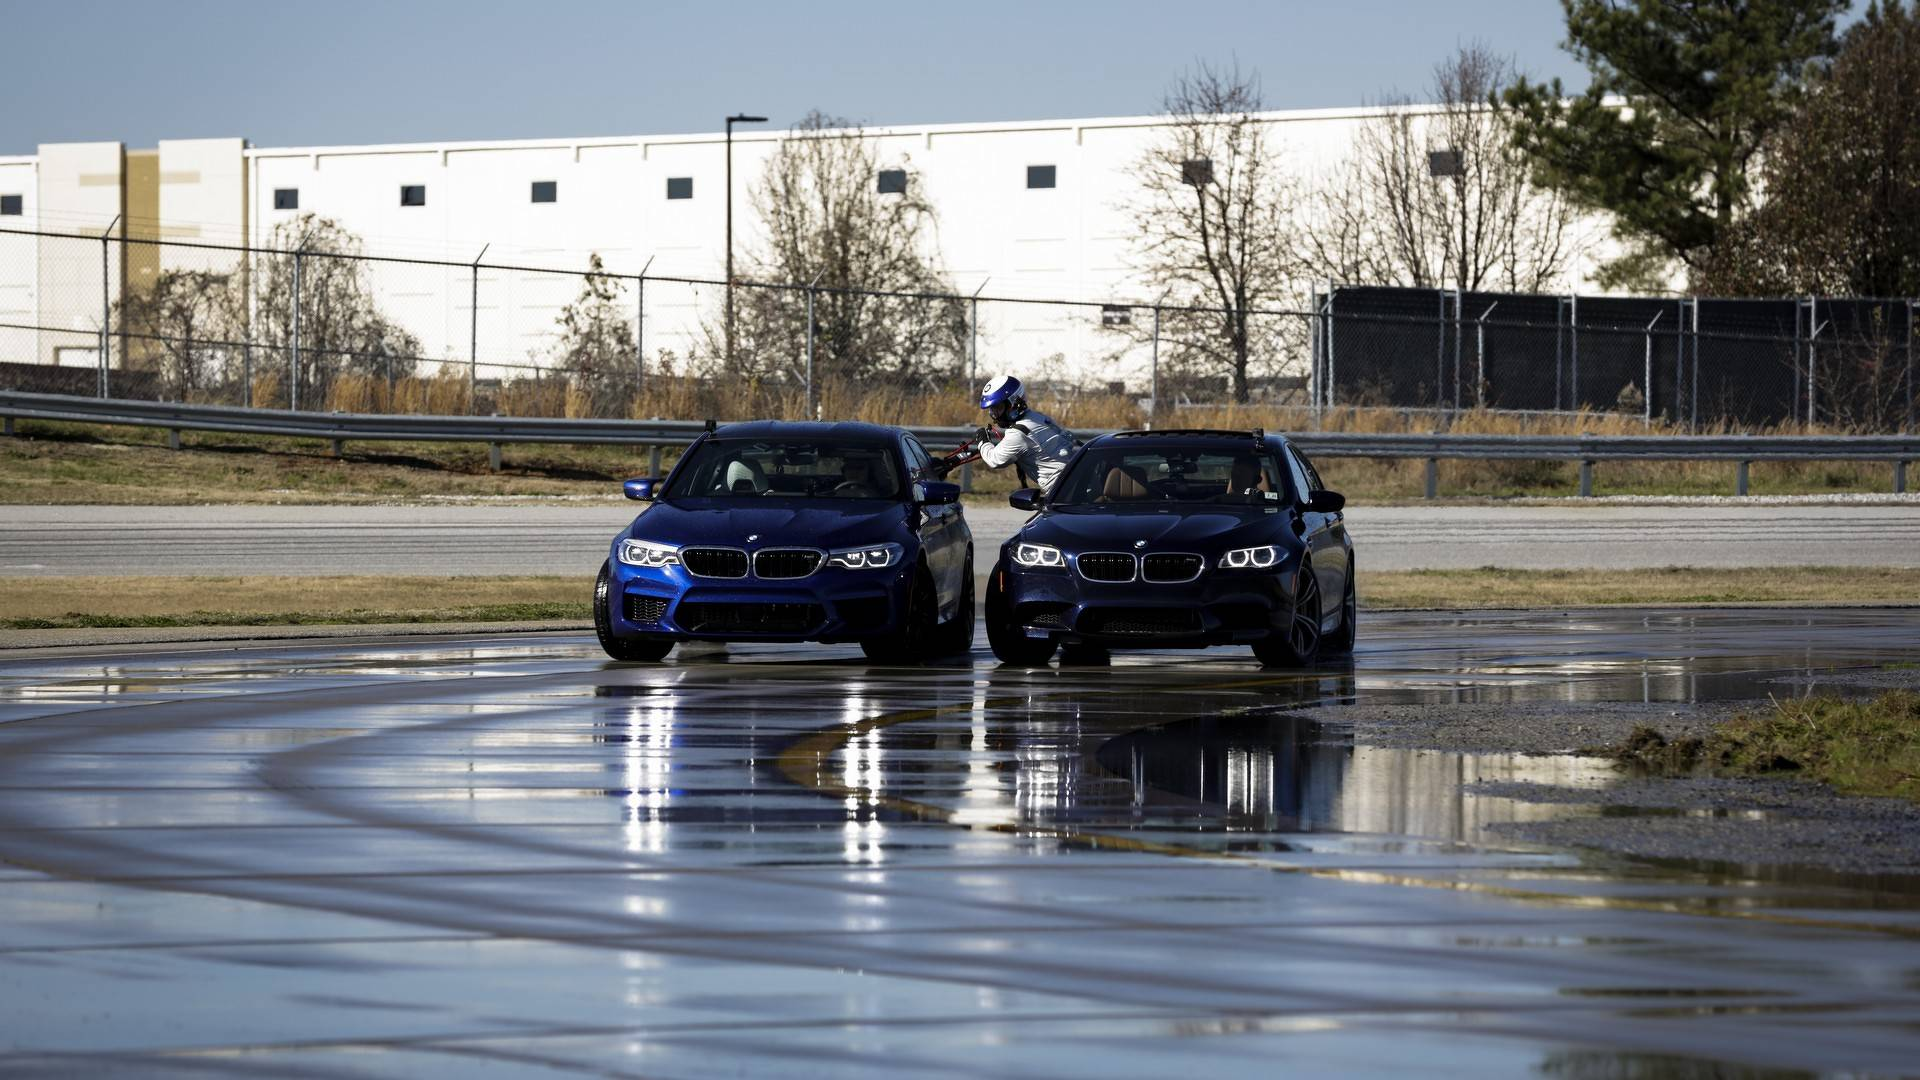 BMW M5 Breaks Record for Longest Drift